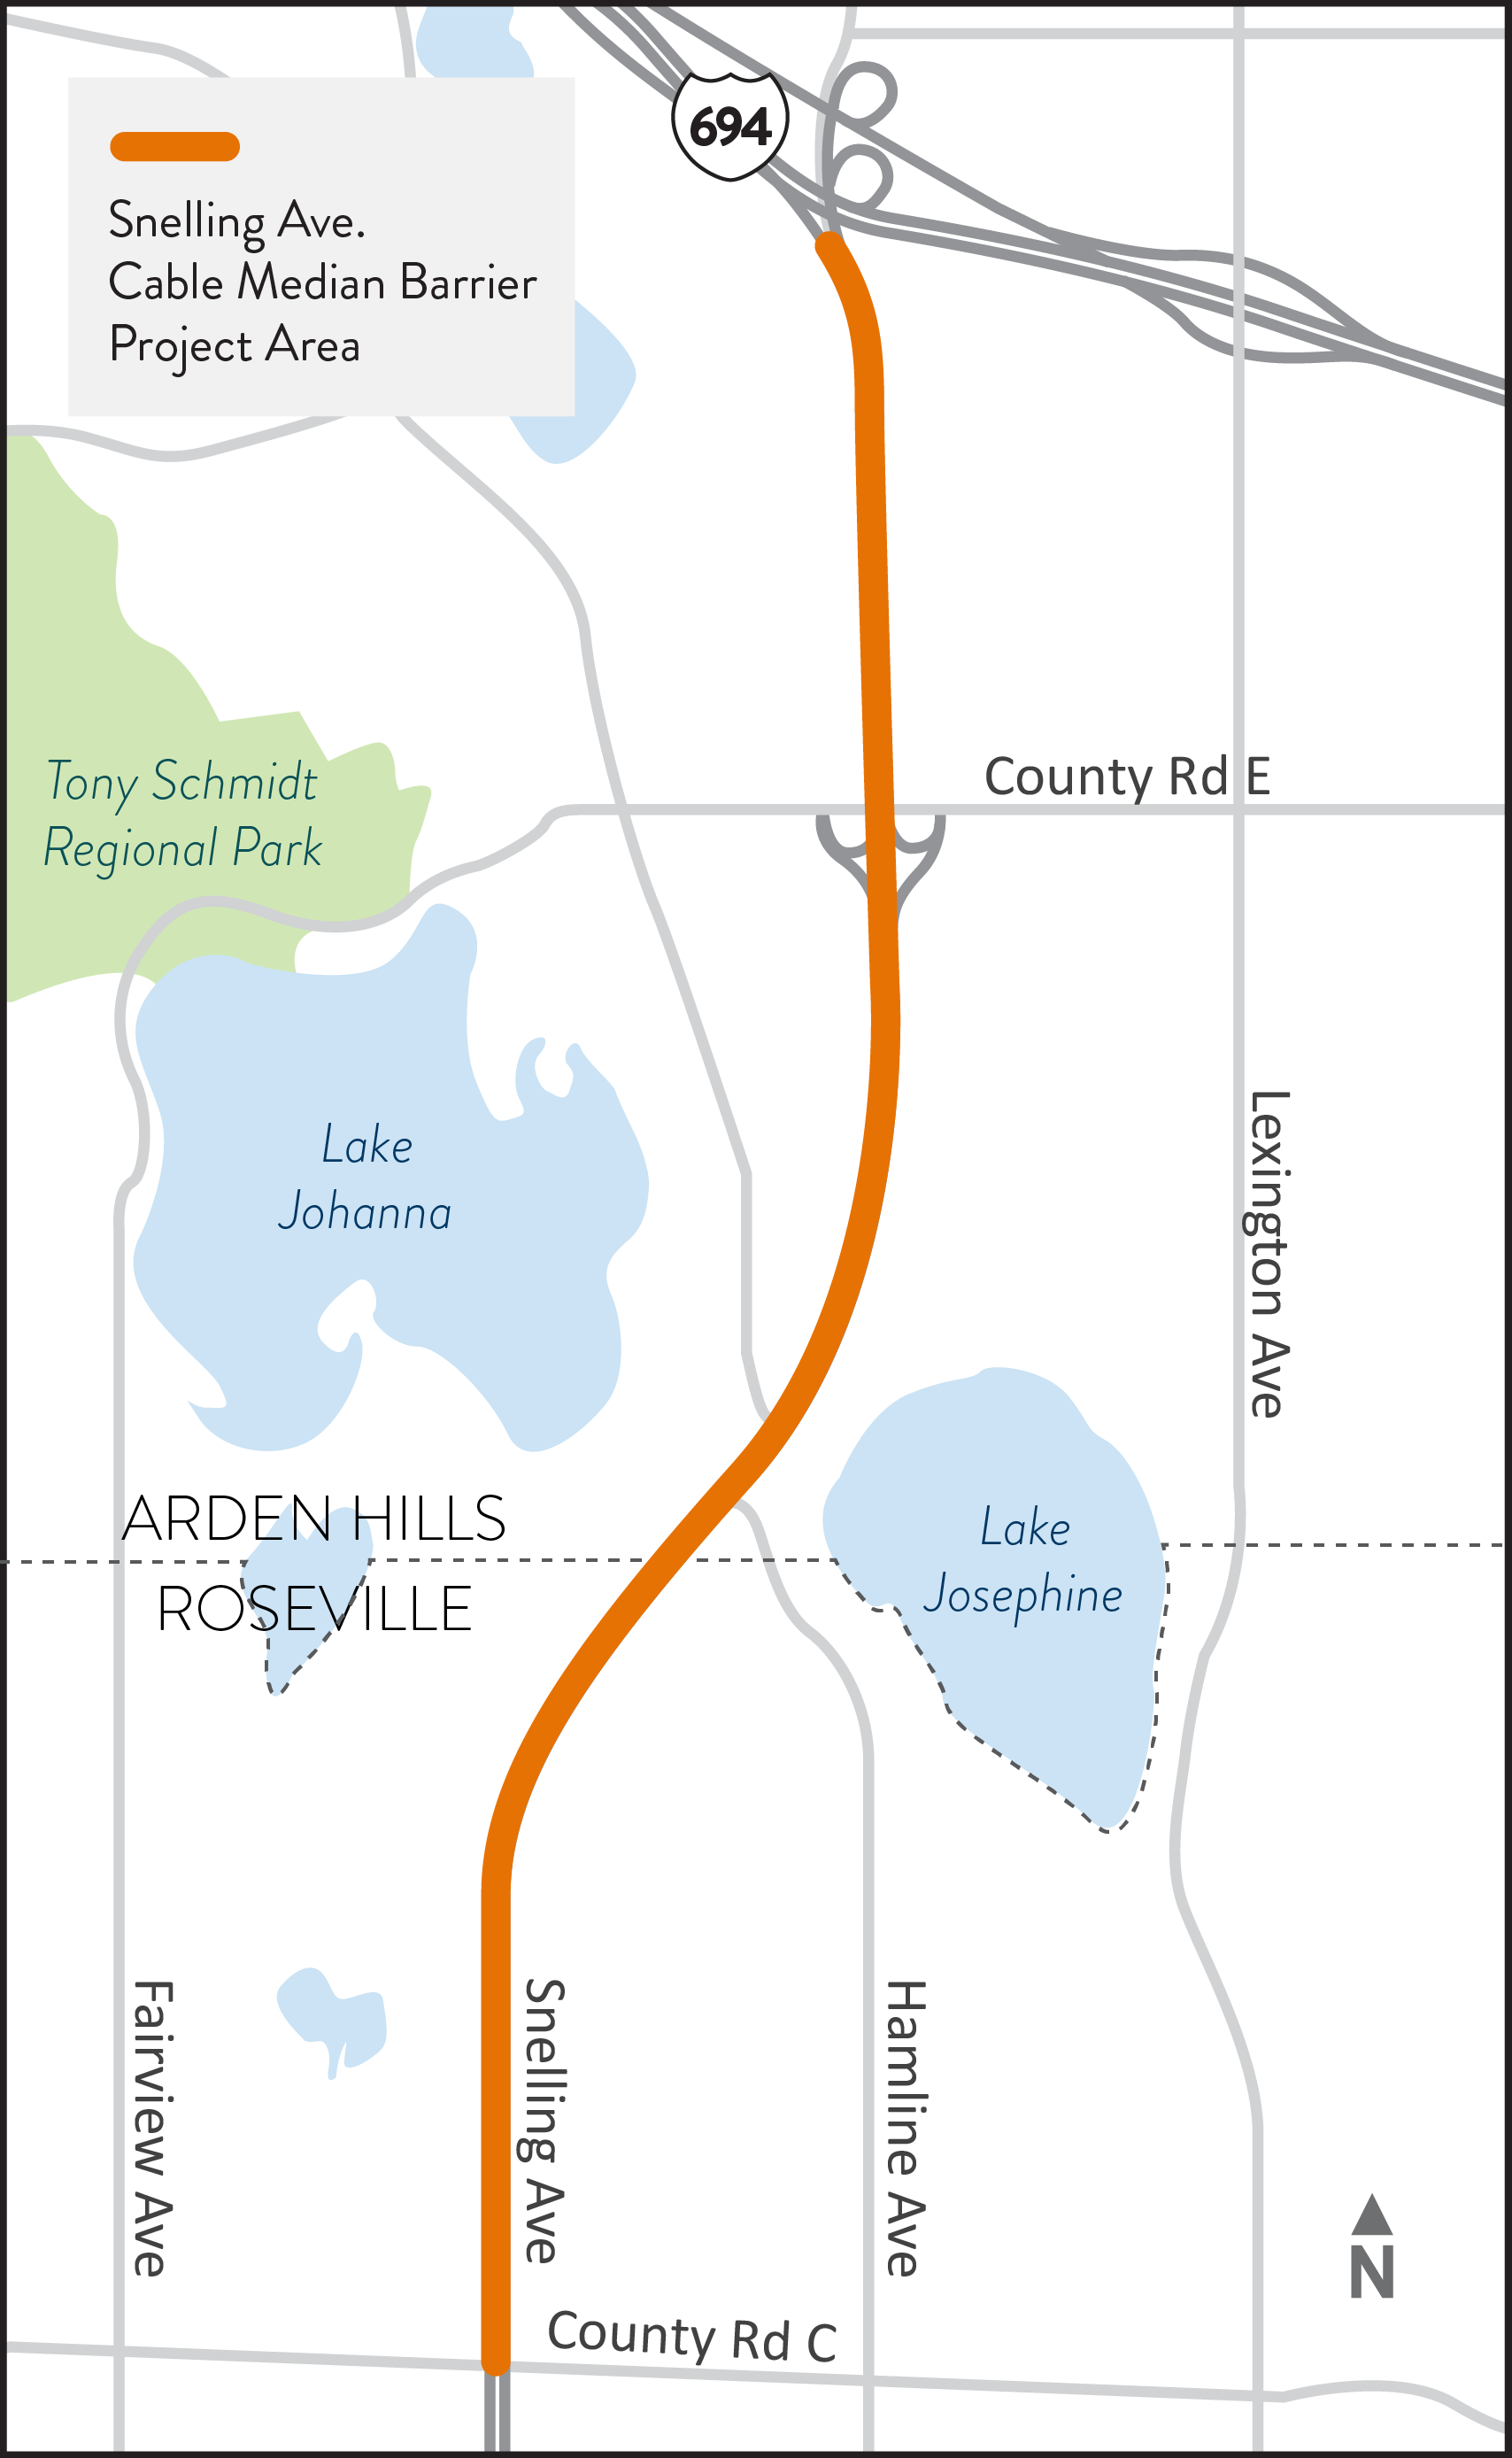 Map of Snelling Avenue project area between Roseville and Arden Hills